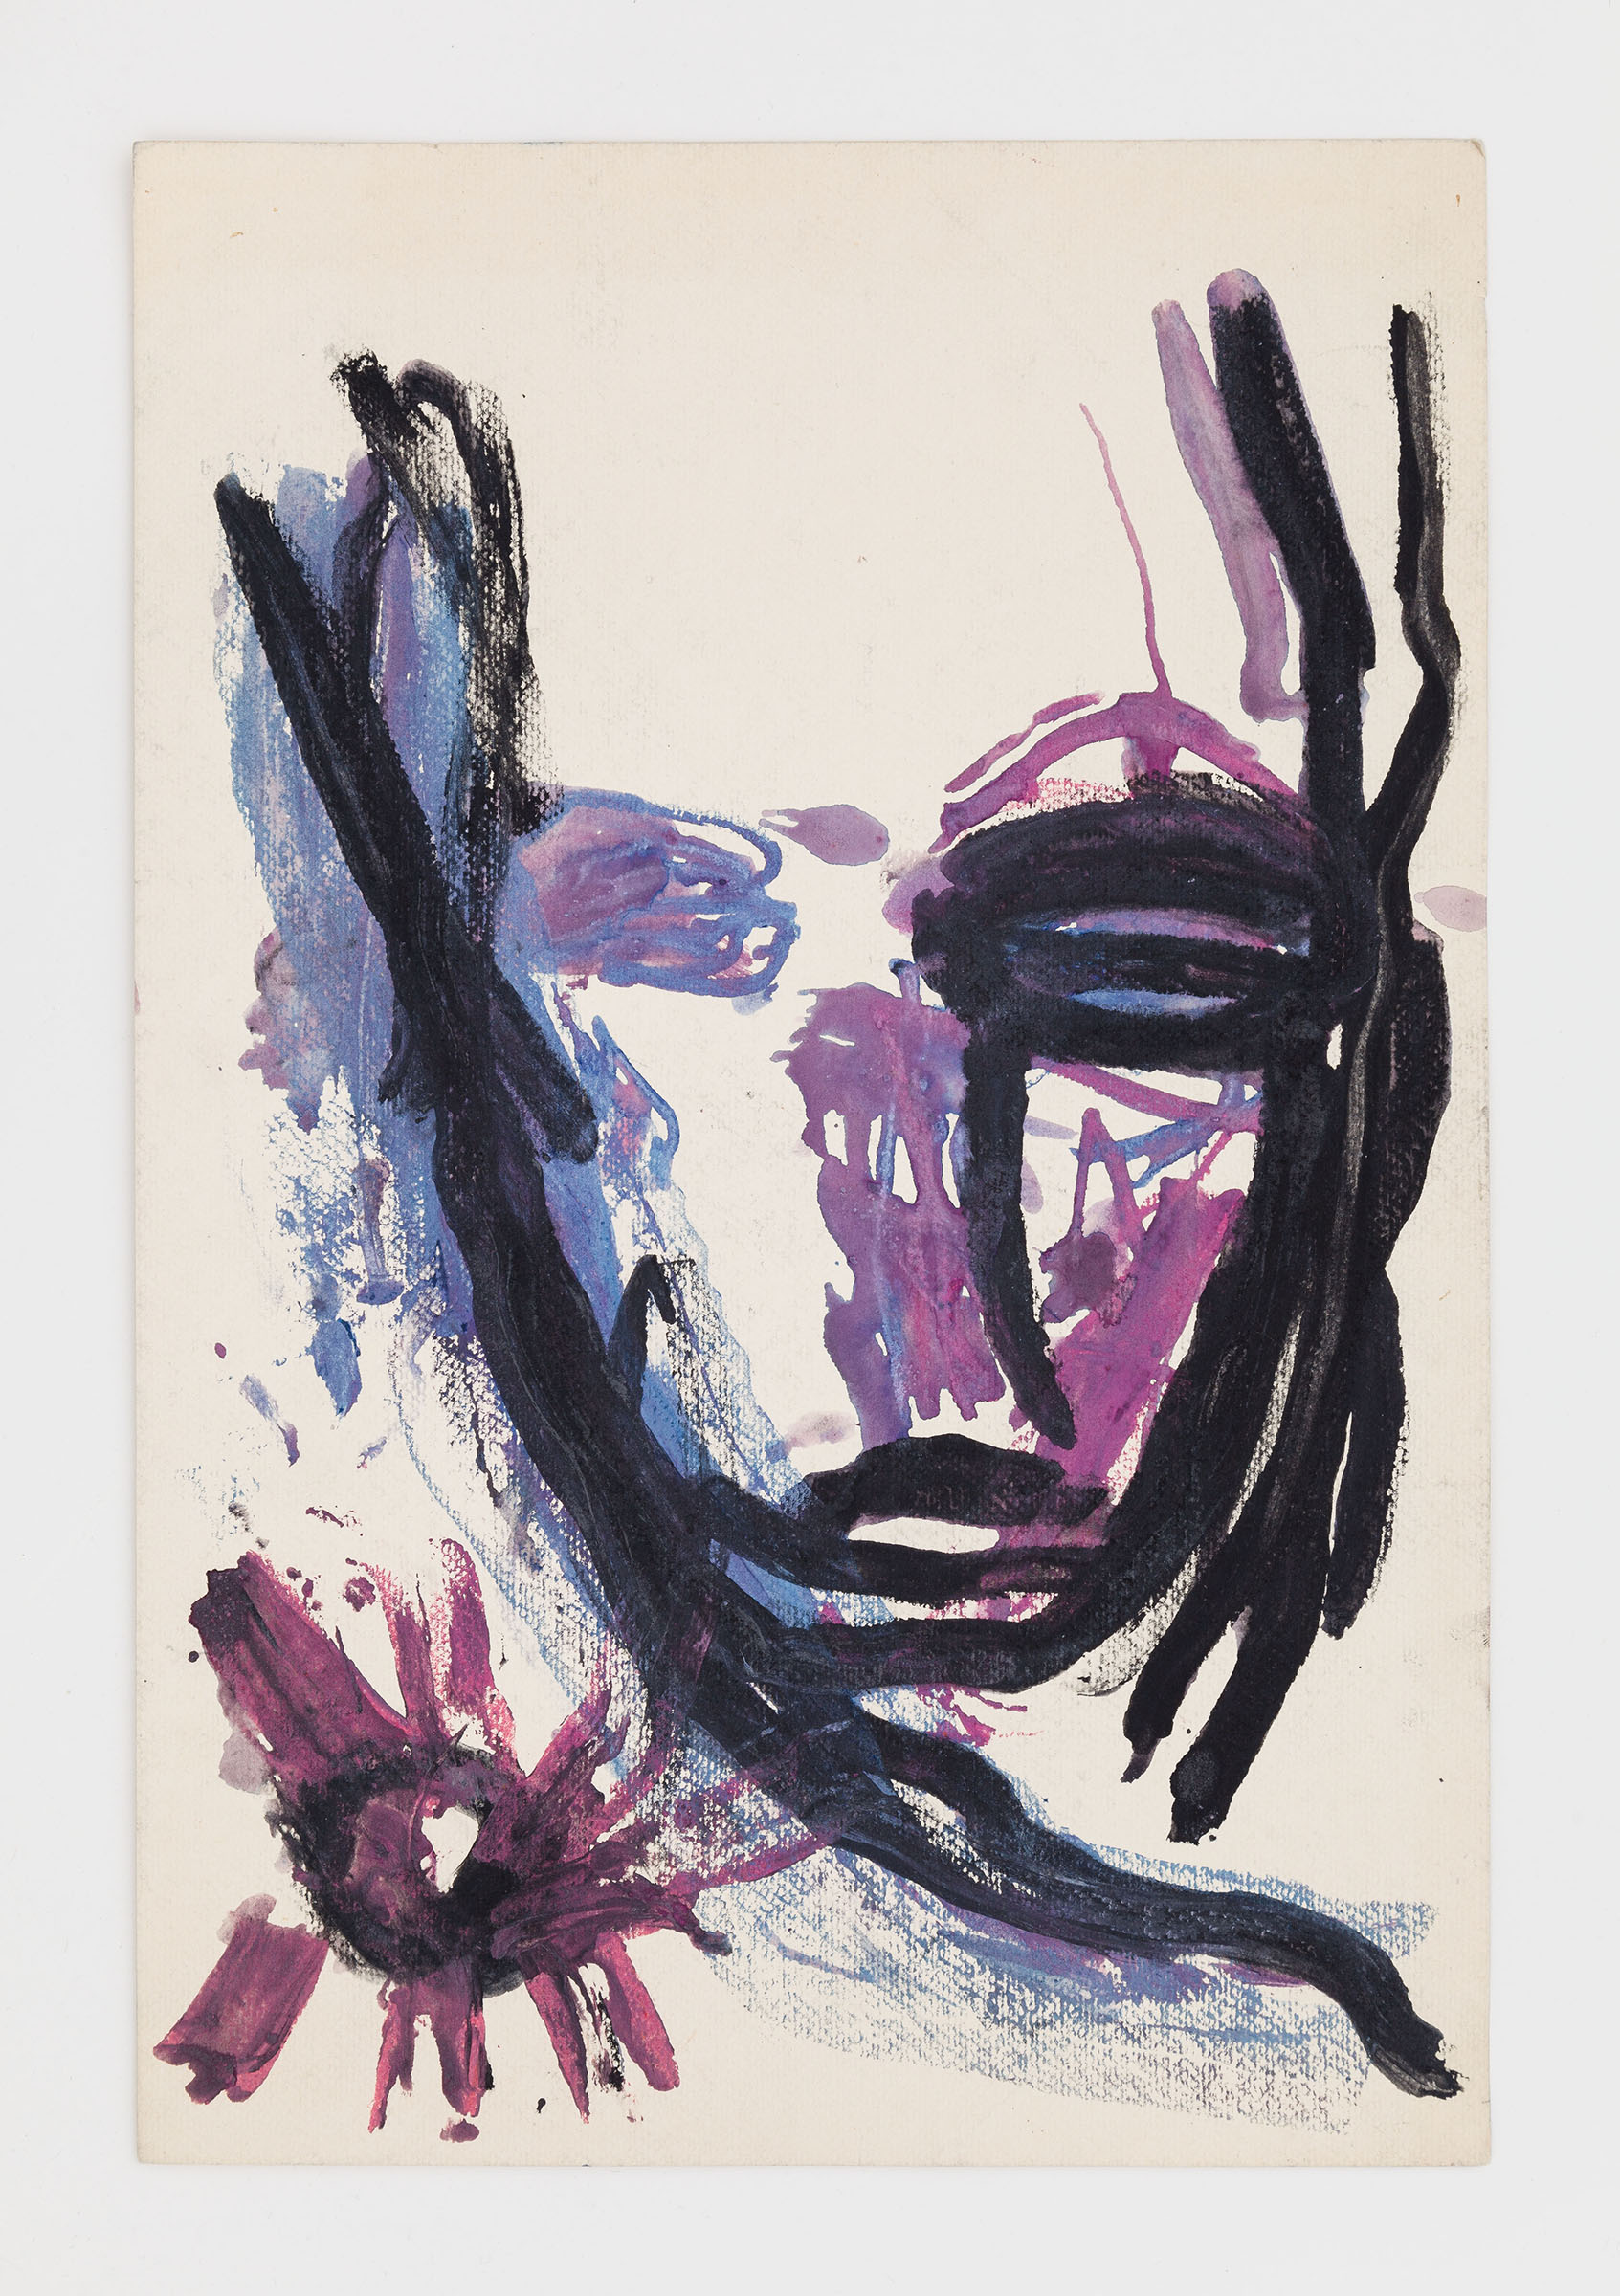 Dan Asher,  Untitled,  1980s, mixed media on paper, 18 x 12 in.